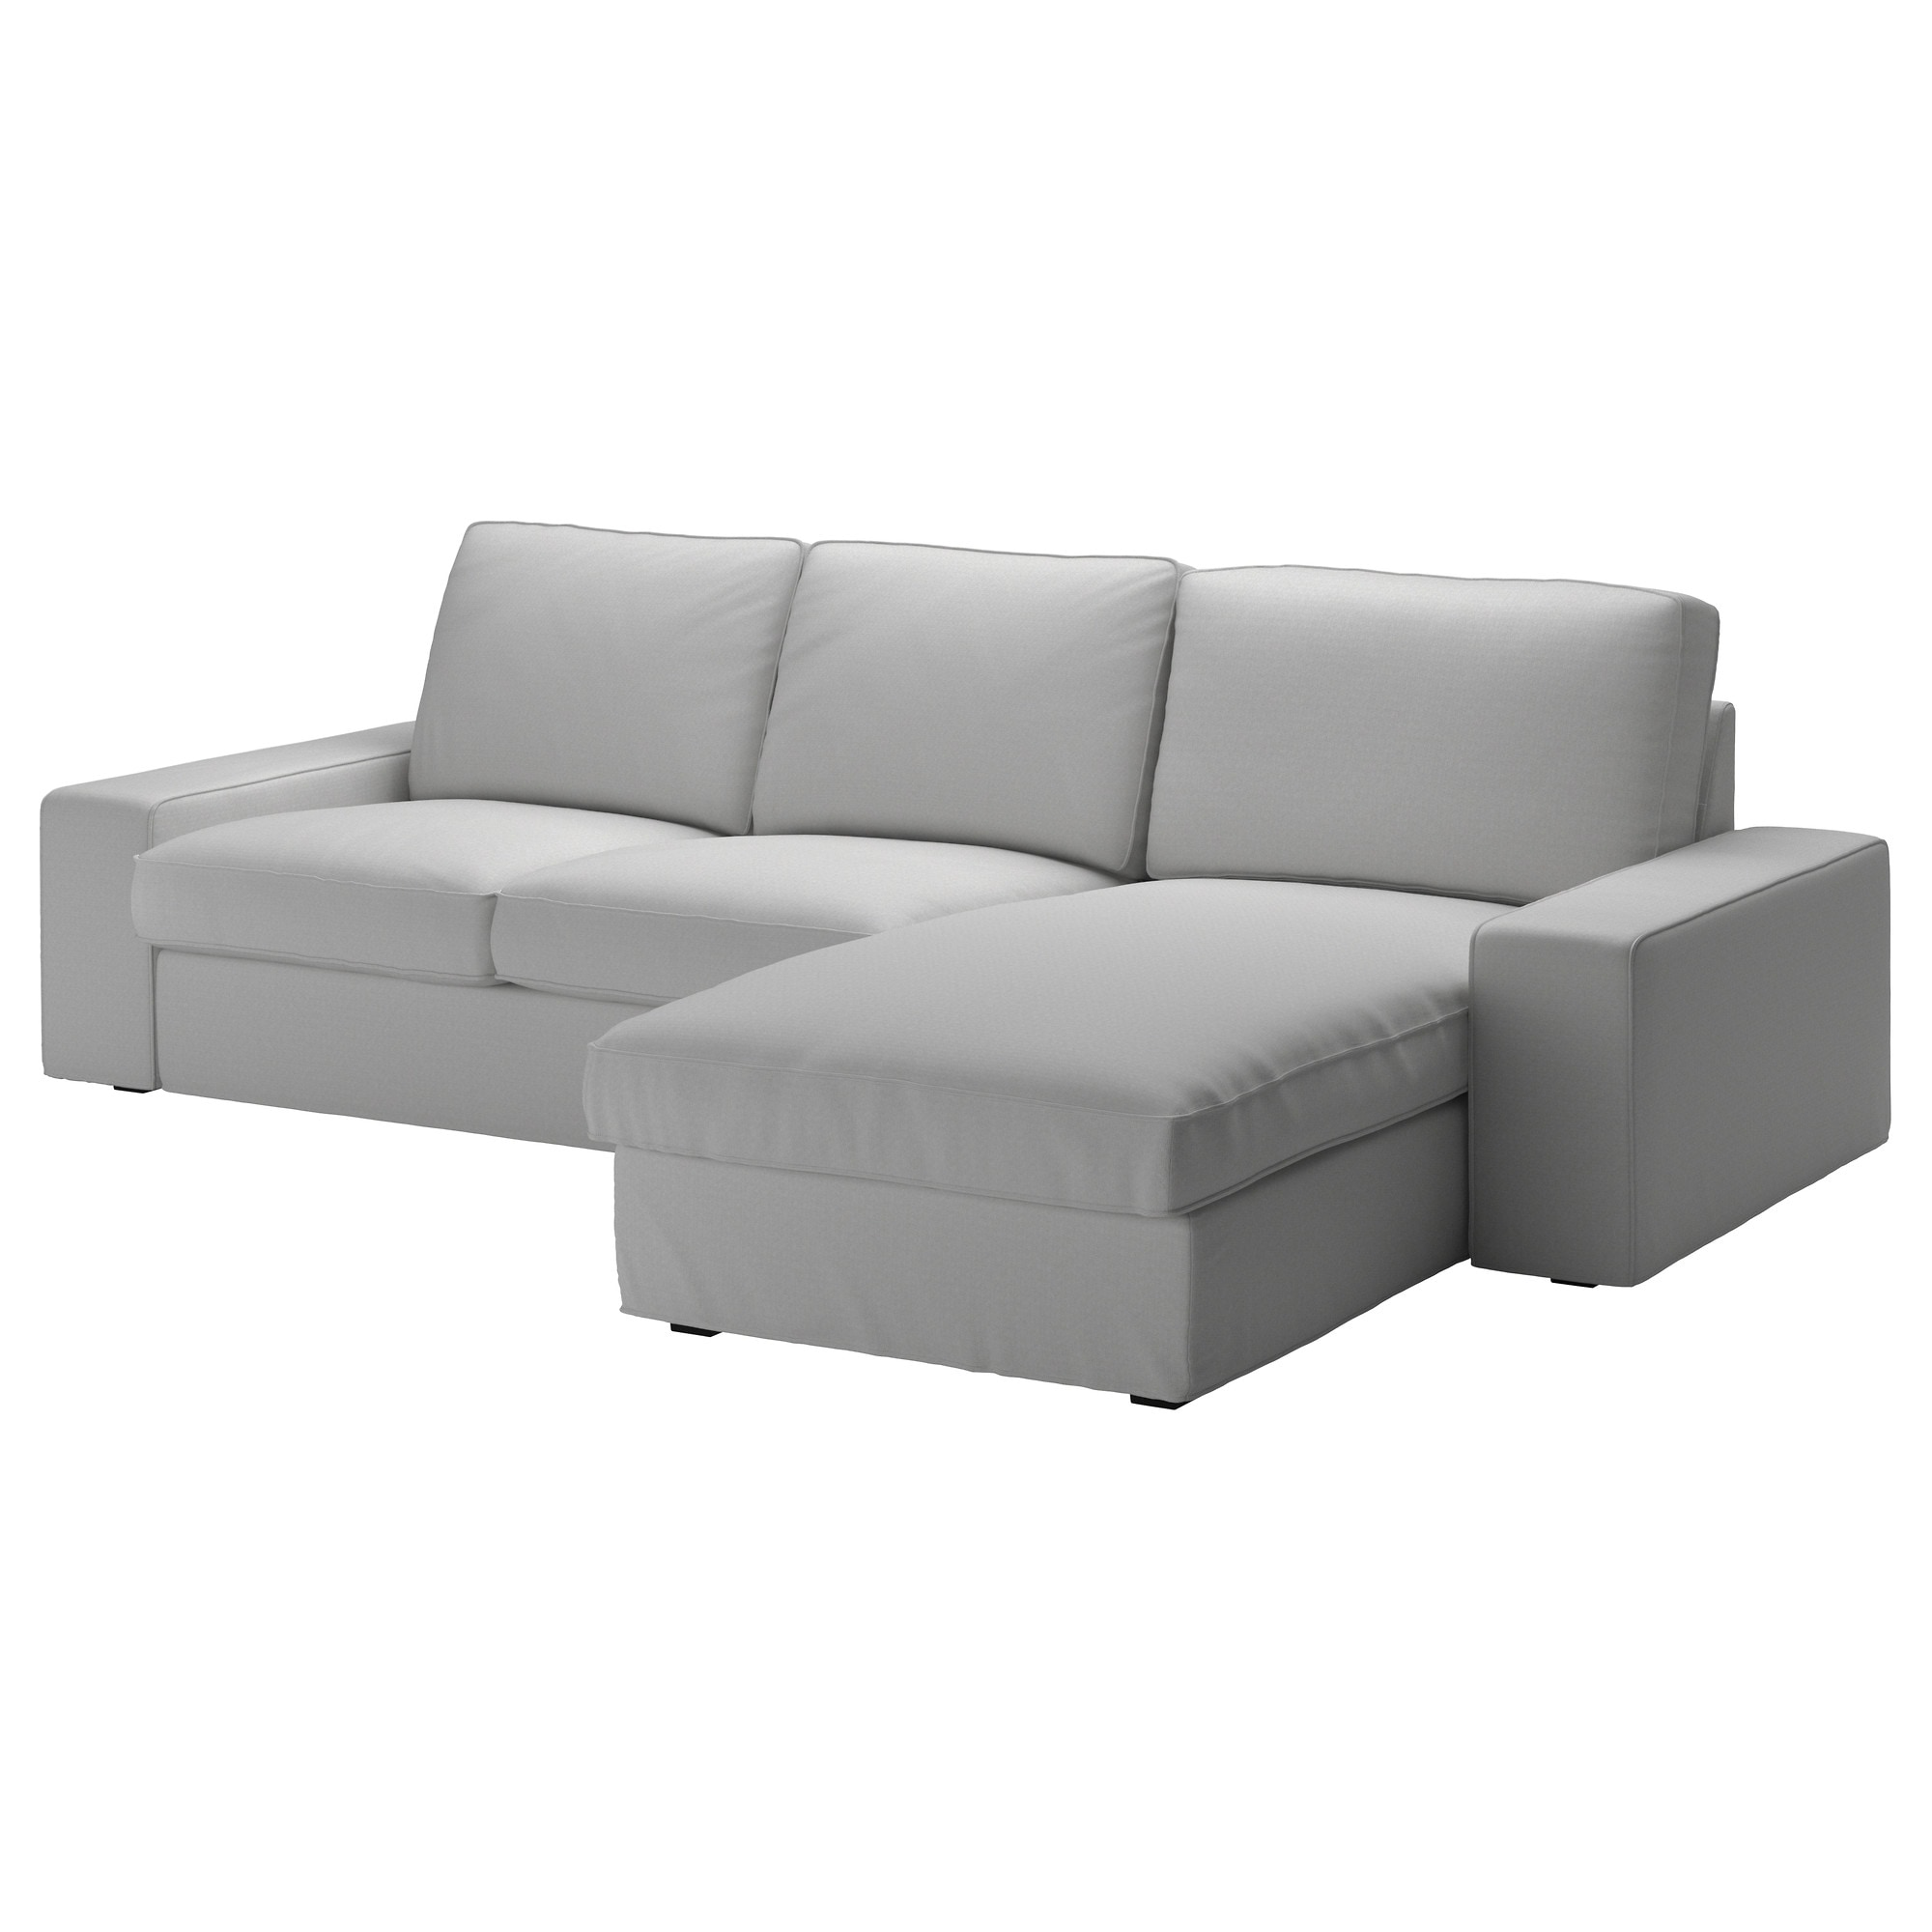 Merveilleux KIVIK 3 Seat Sofa   Orrsta Light Grey   IKEA